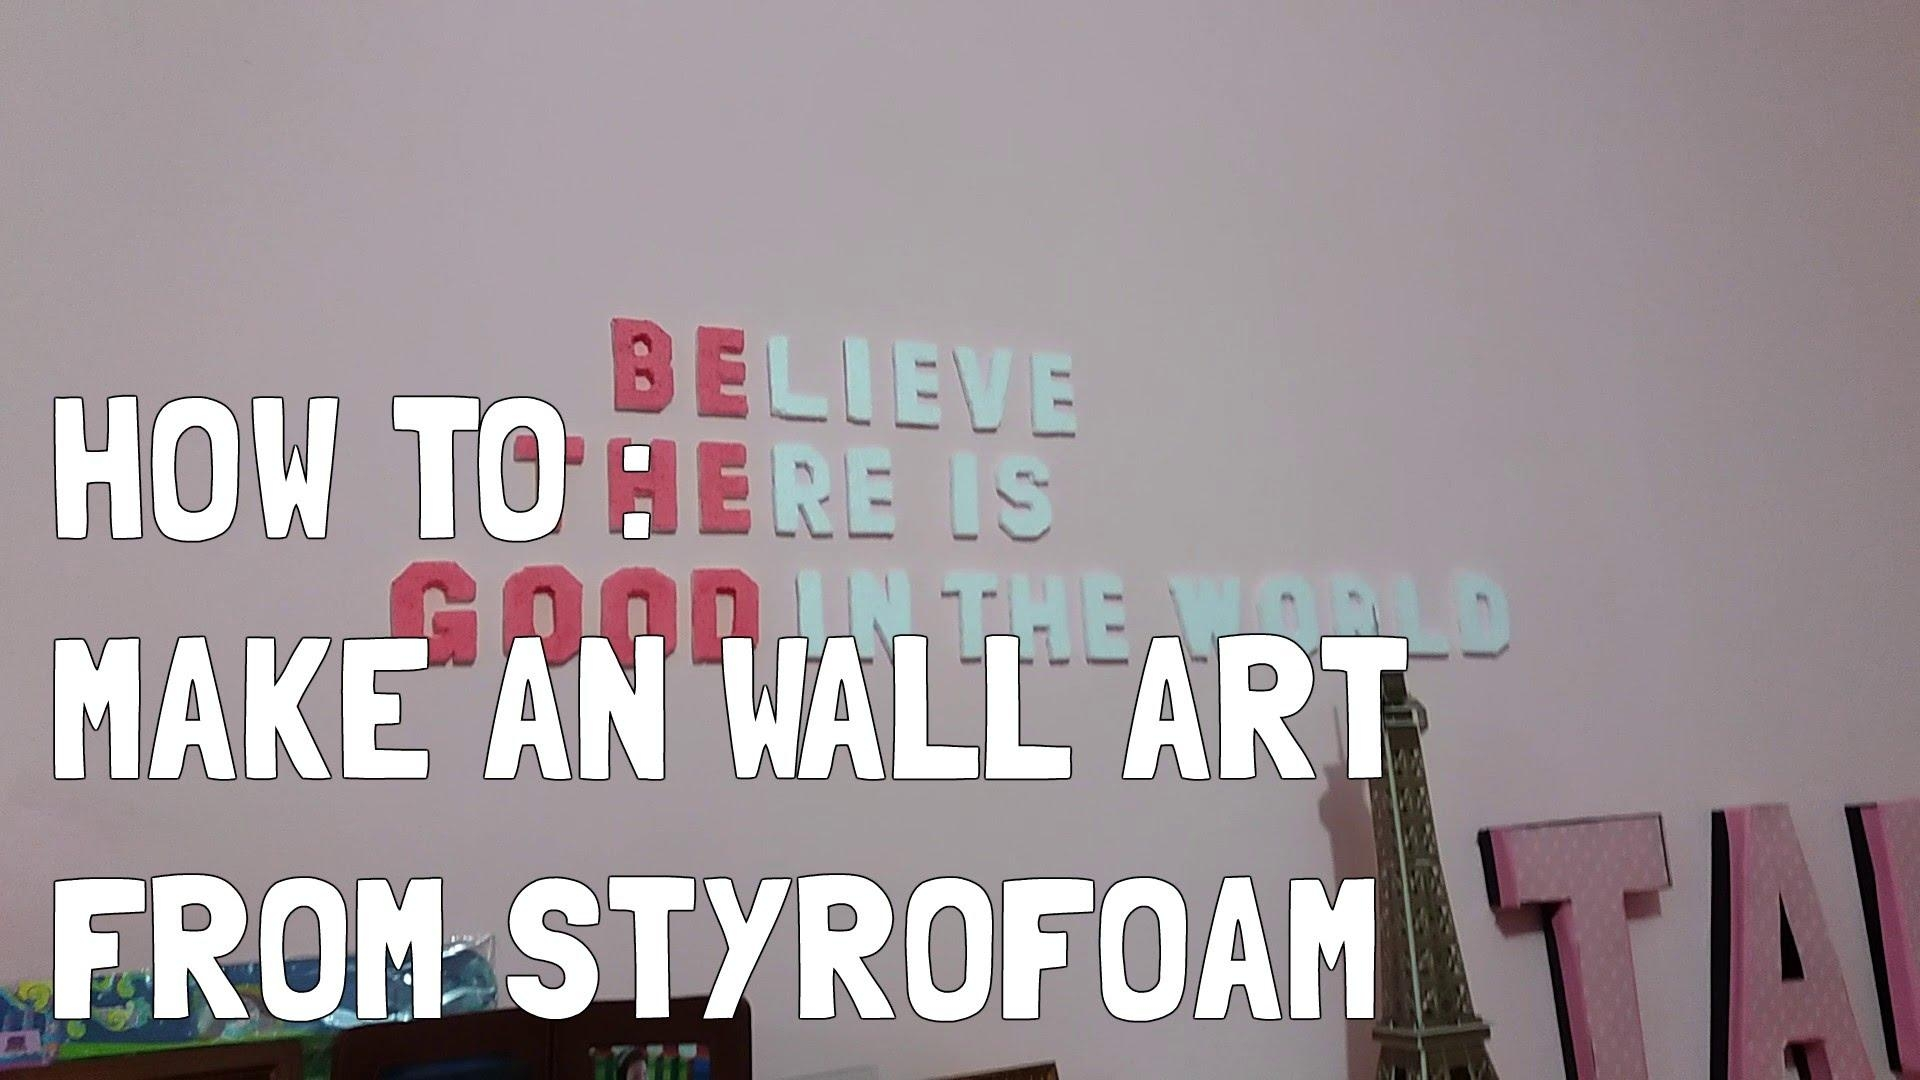 Diy] How To : Make An Wall Art From Styrofoam – Youtube In Styrofoam Wall Art (Image 9 of 20)